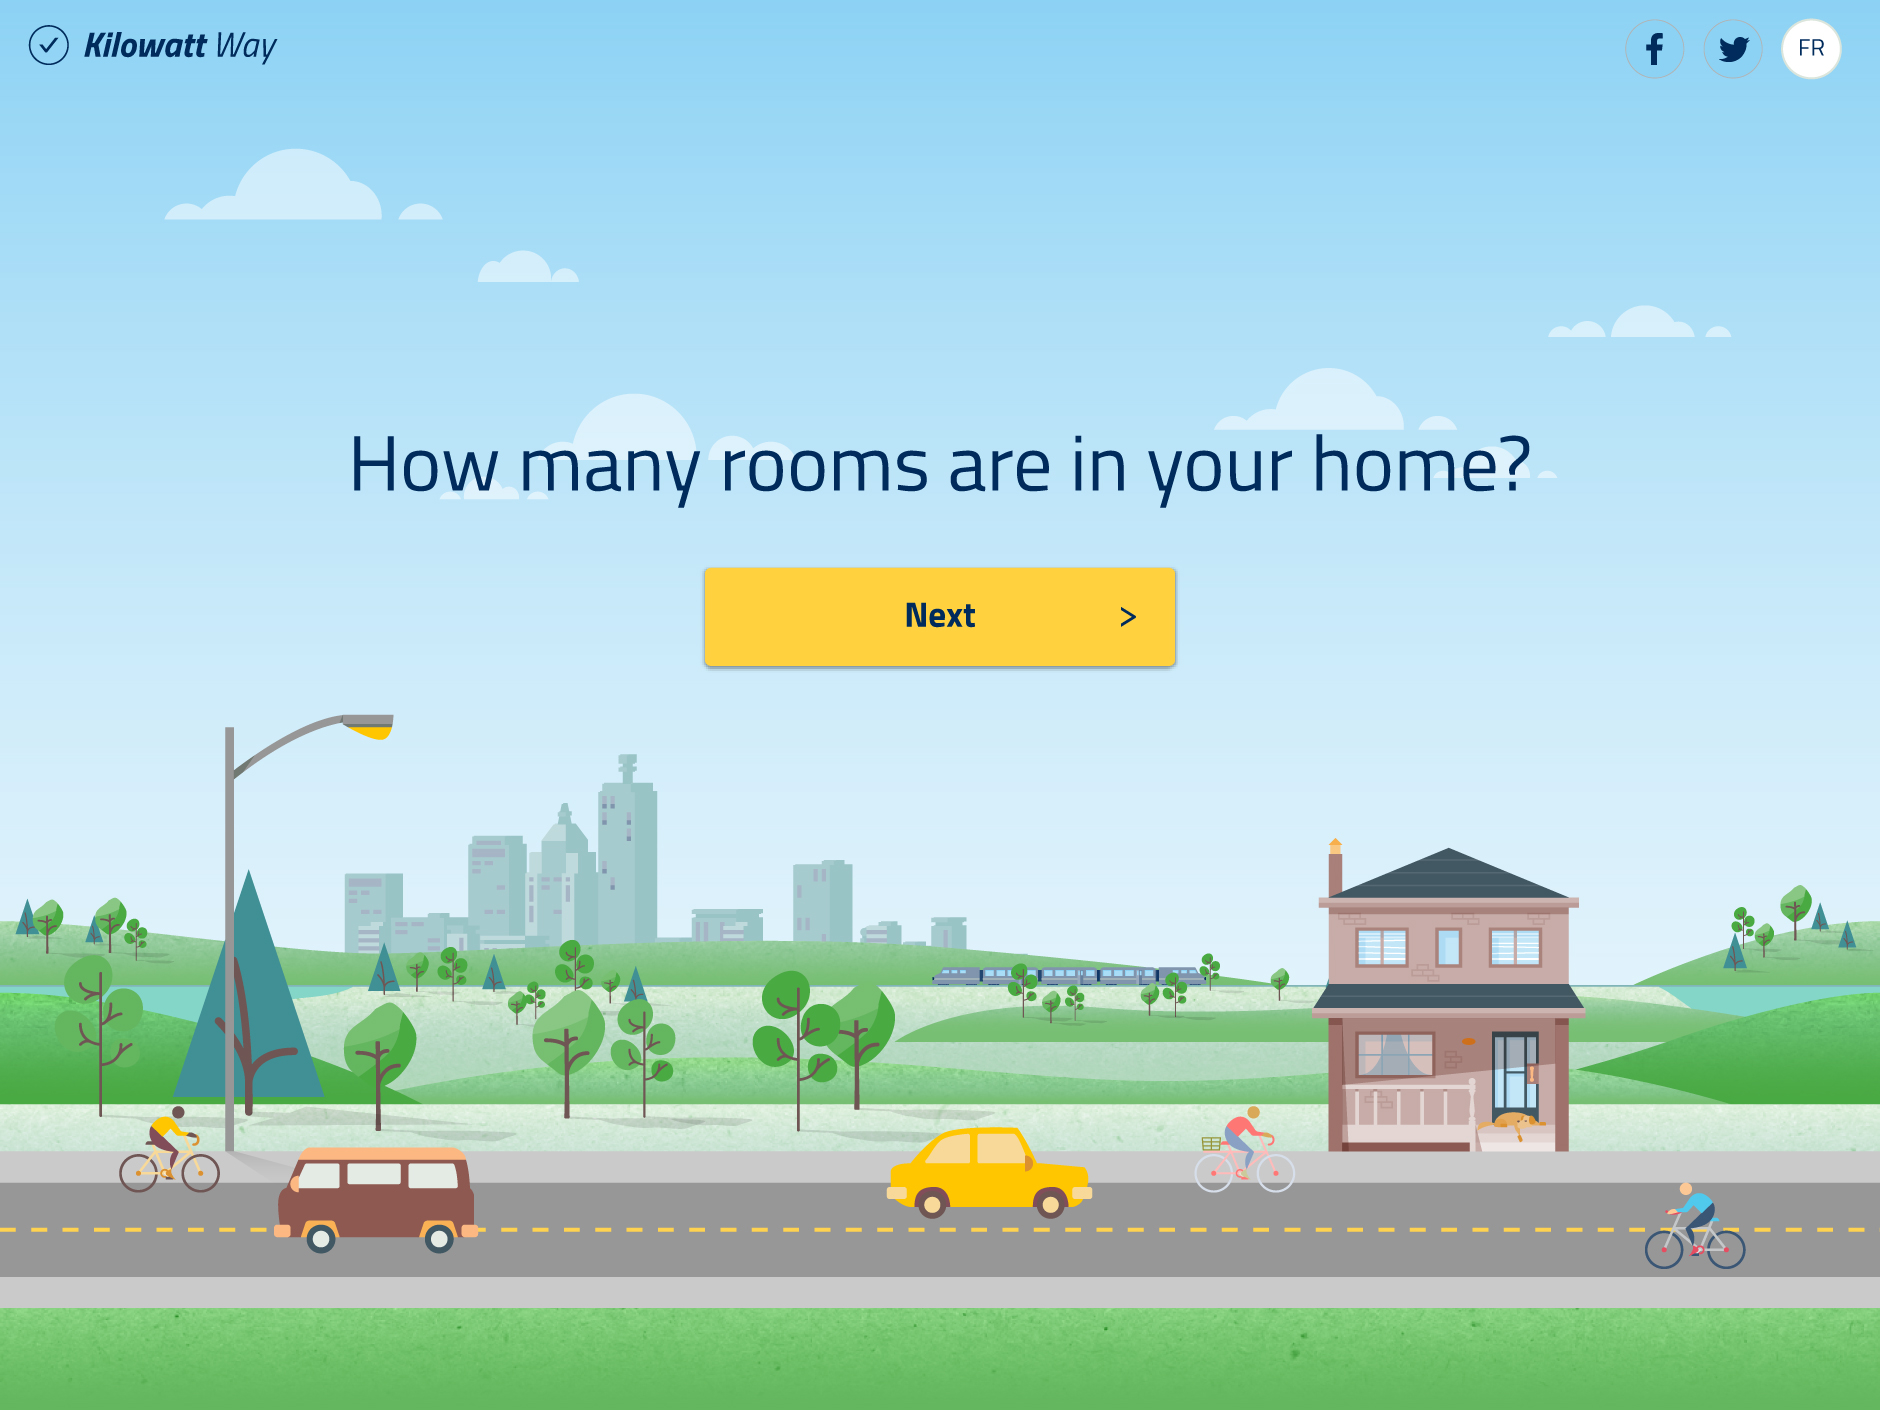 Kilowatt Way question screen - how many rooms are in your home?